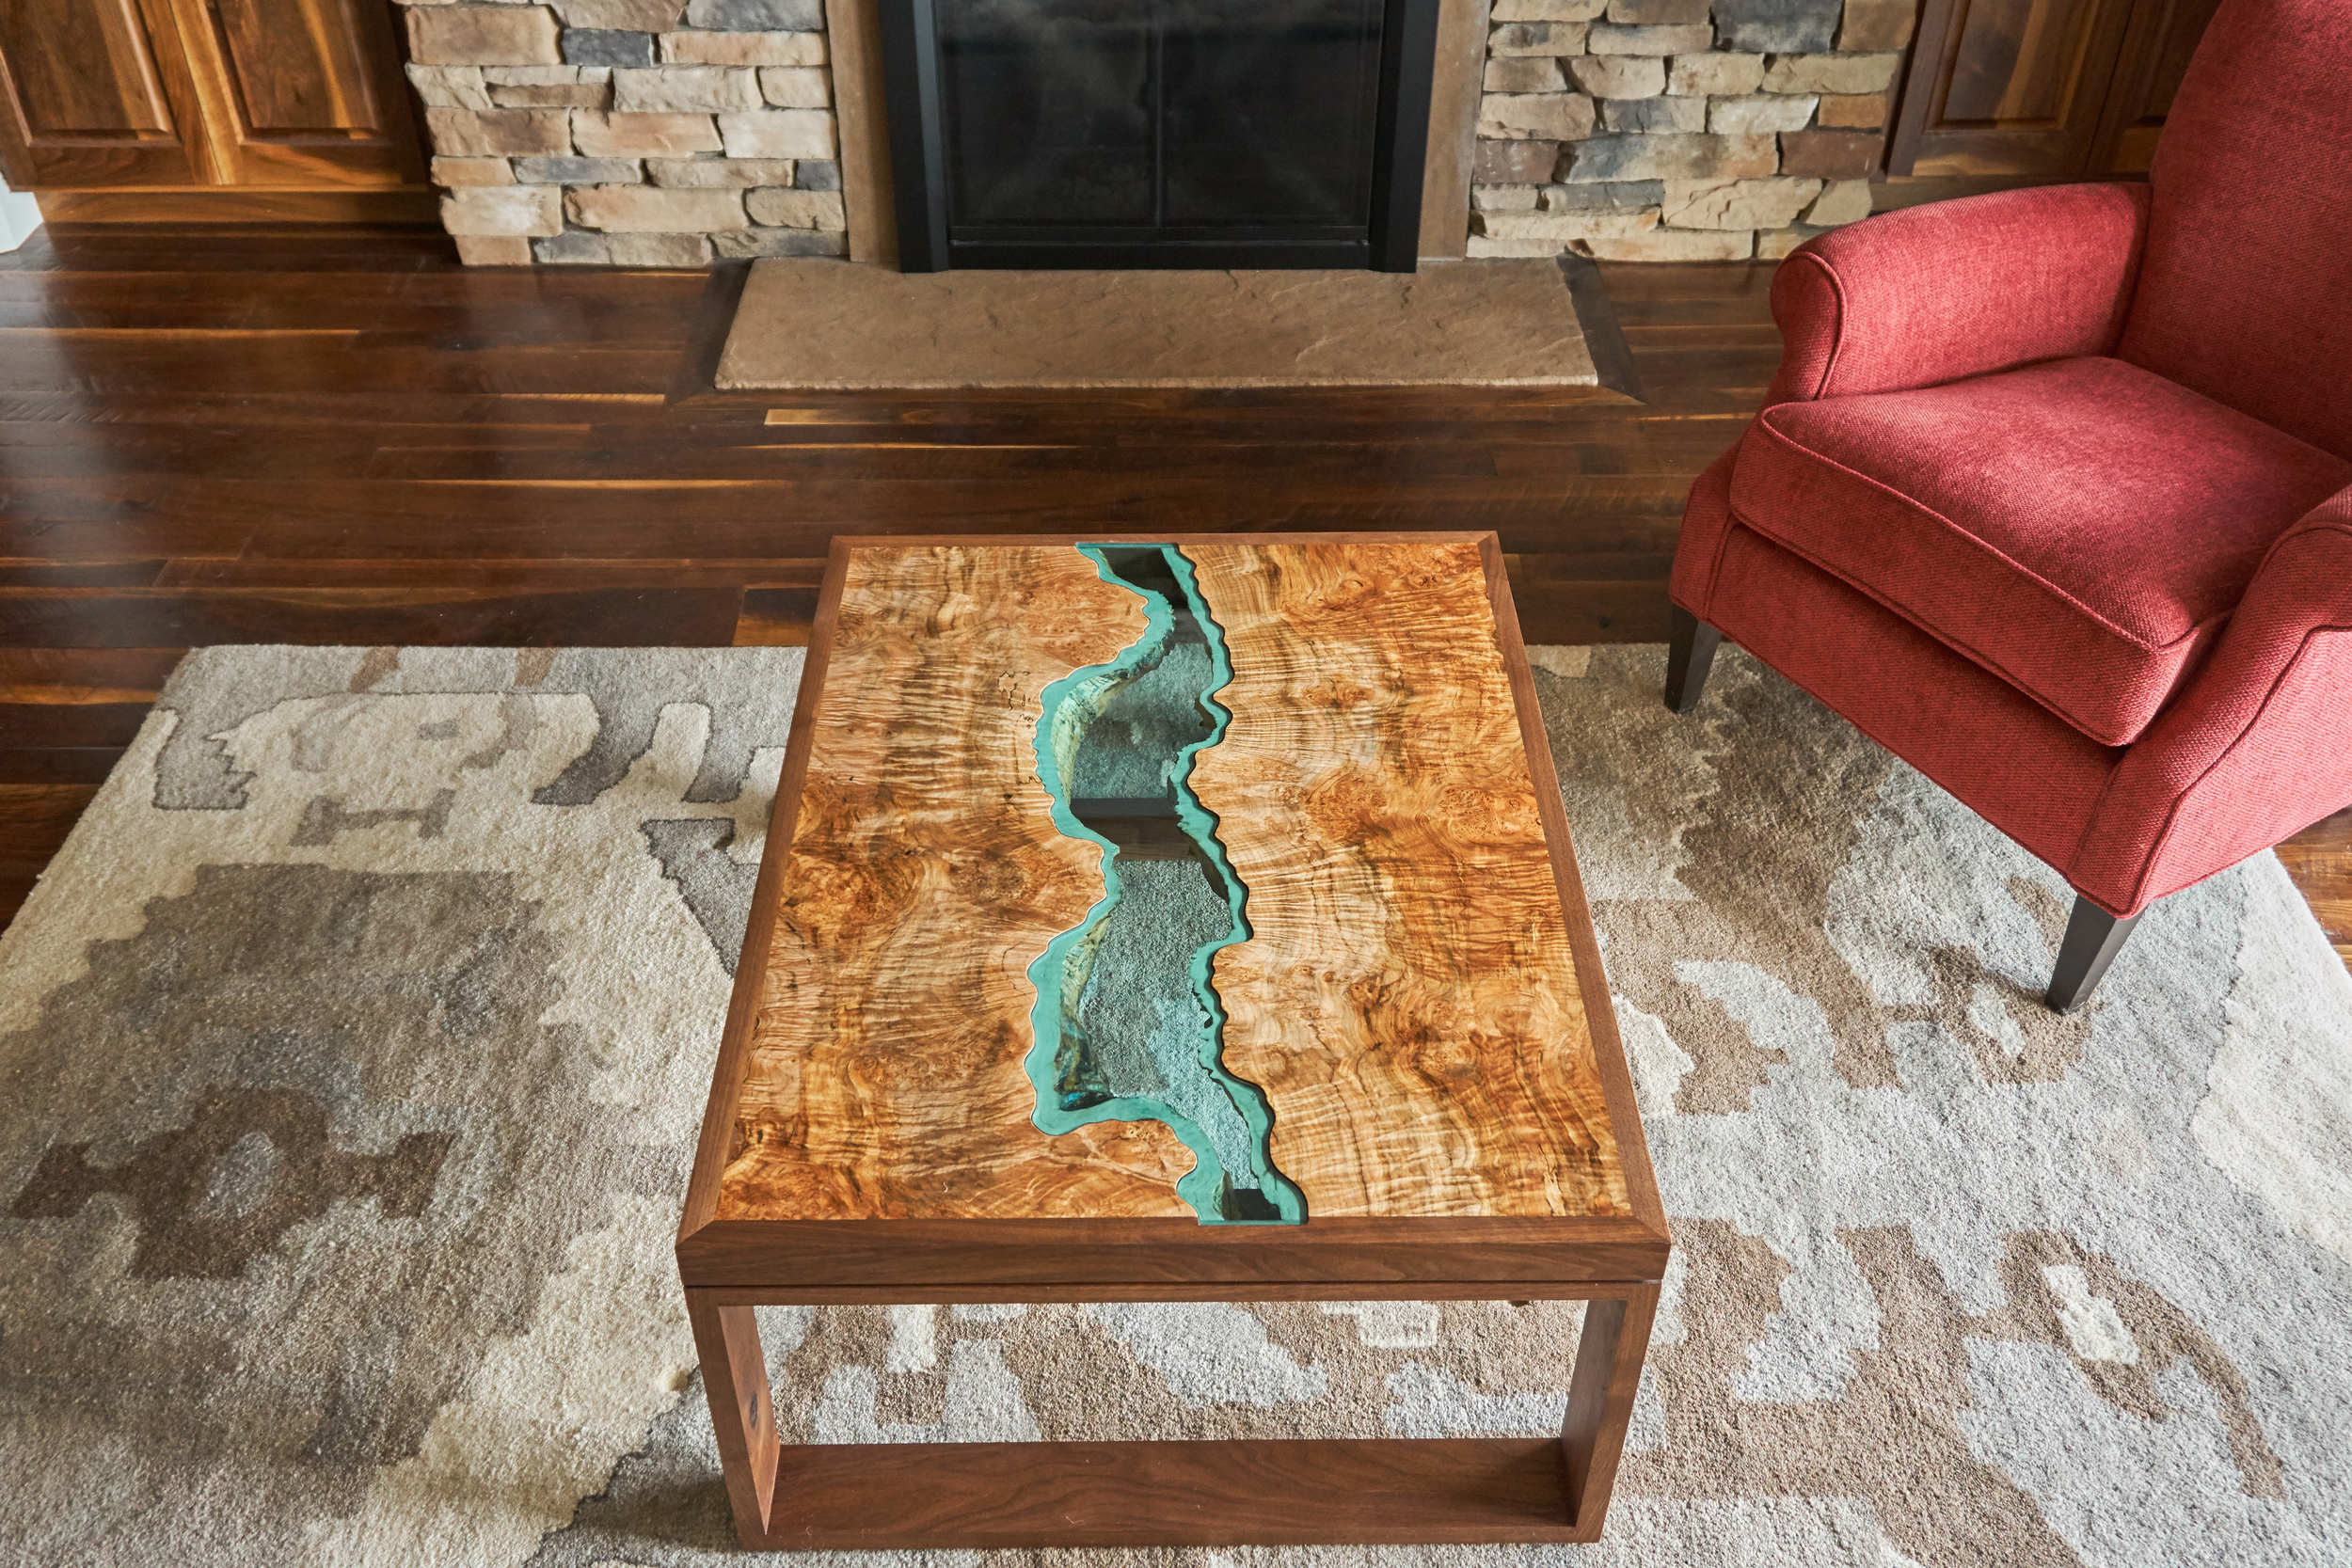 The Prism Maple Collection Coffee Table in a beautiful Denver home.